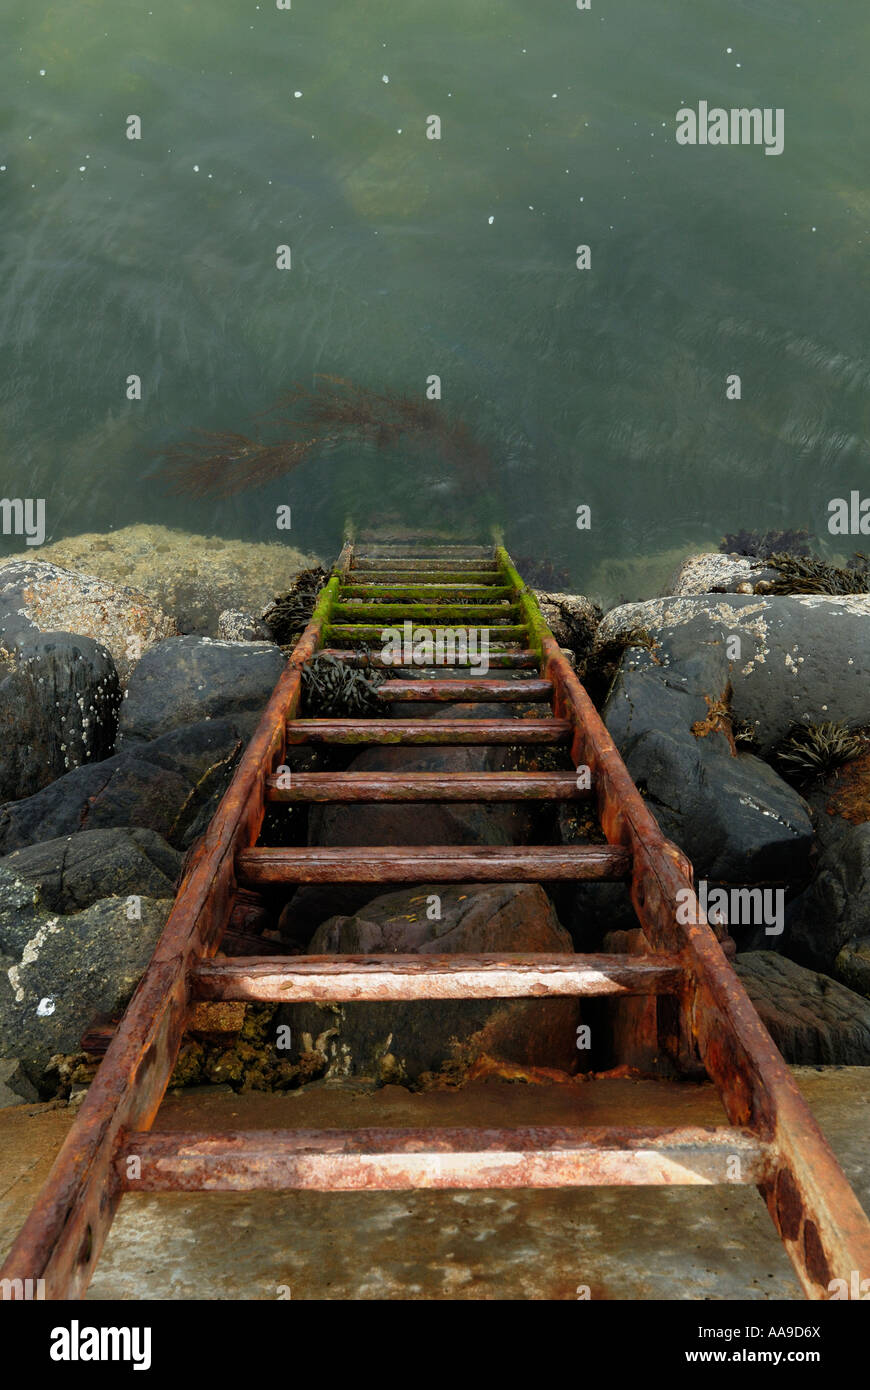 Ladder going into the sea - Stock Image